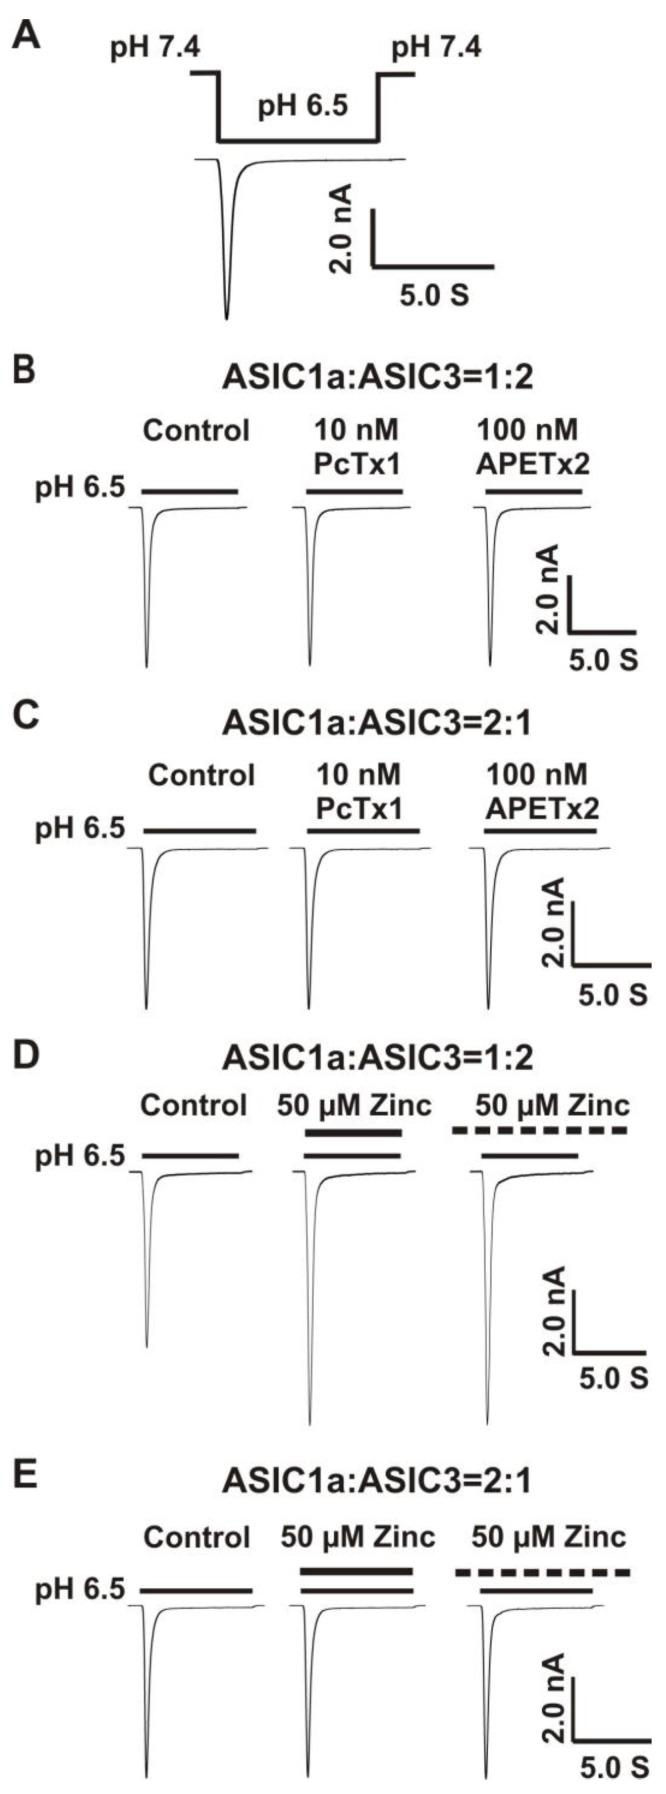 Co-overexpression of 1:2, but not 2:1 ratio of ASIC1a and ASIC3 cDNA revealed a profound response to zinc. ( A ) Activation of heteromeric ASIC1a/3 channels by fast perfusion for a drop in pH from 7.4 to 6.5 on CHO cell expressing both ASIC1a and ASIC3 subunits. The perfusion time for low pH value (e.g., 6.5) is 7 s; ( B ) Representative traces show that PcTx1 (10 nM) and APETx2 (100 nM) have no effects on the heteromeric ASIC1a/3 currents using a 1:2 ratio of ASIC1a and ASIC3, n = 5; ( C ) Representative traces show that PcTx1 (10 nM) and APETx2 (100 nM) also have no effects on the heteromeric ASIC1a/3 currents using a 2:1 ratio of ASIC1a and ASIC3, n = 5; ( D ) Co-application and pretreatment with zinc at 50 µM significantly potentiated the currents of heteromeric ASIC1a/3 using a 1:2 ratio of ASIC1a and ASIC3 (the same cell as Figure 2 B), n = 5; ( E ) Co-application and pretreatment with zinc at 50 µM had no effects on the currents of heteromeric ASIC1a/3 using a 2:1 ratio of ASIC1a and ASIC3 (the same cell as Figure 2 C), n = 5. Dashed black line represents pretreatment with zinc in pH 7.4 extracellular solution (2 min duration).